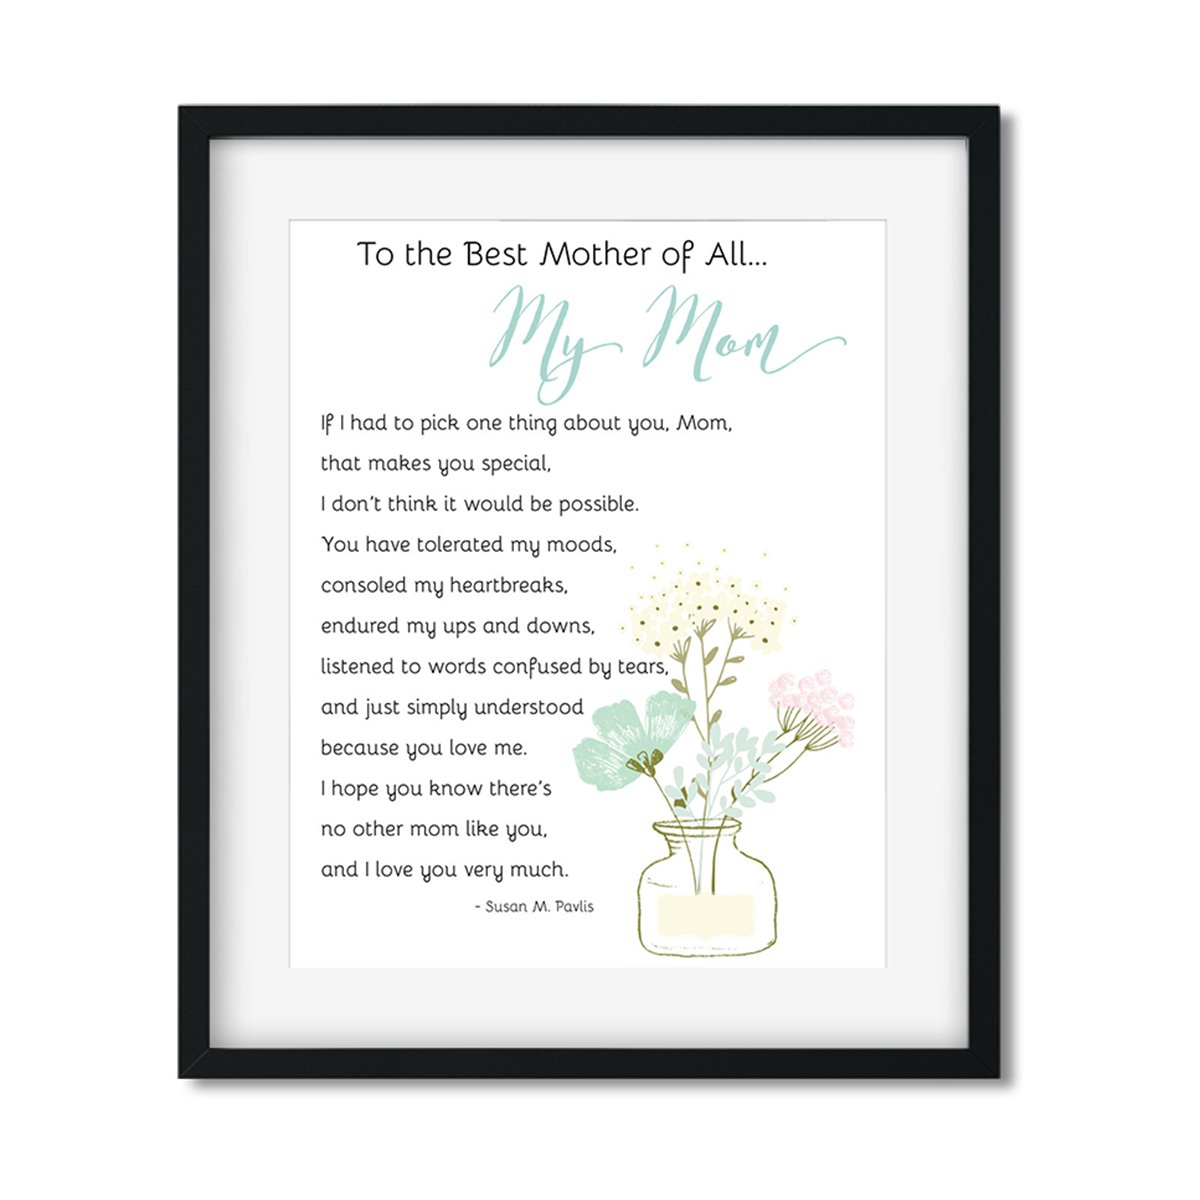 To the best Mother - Art Print - Netties Expressions